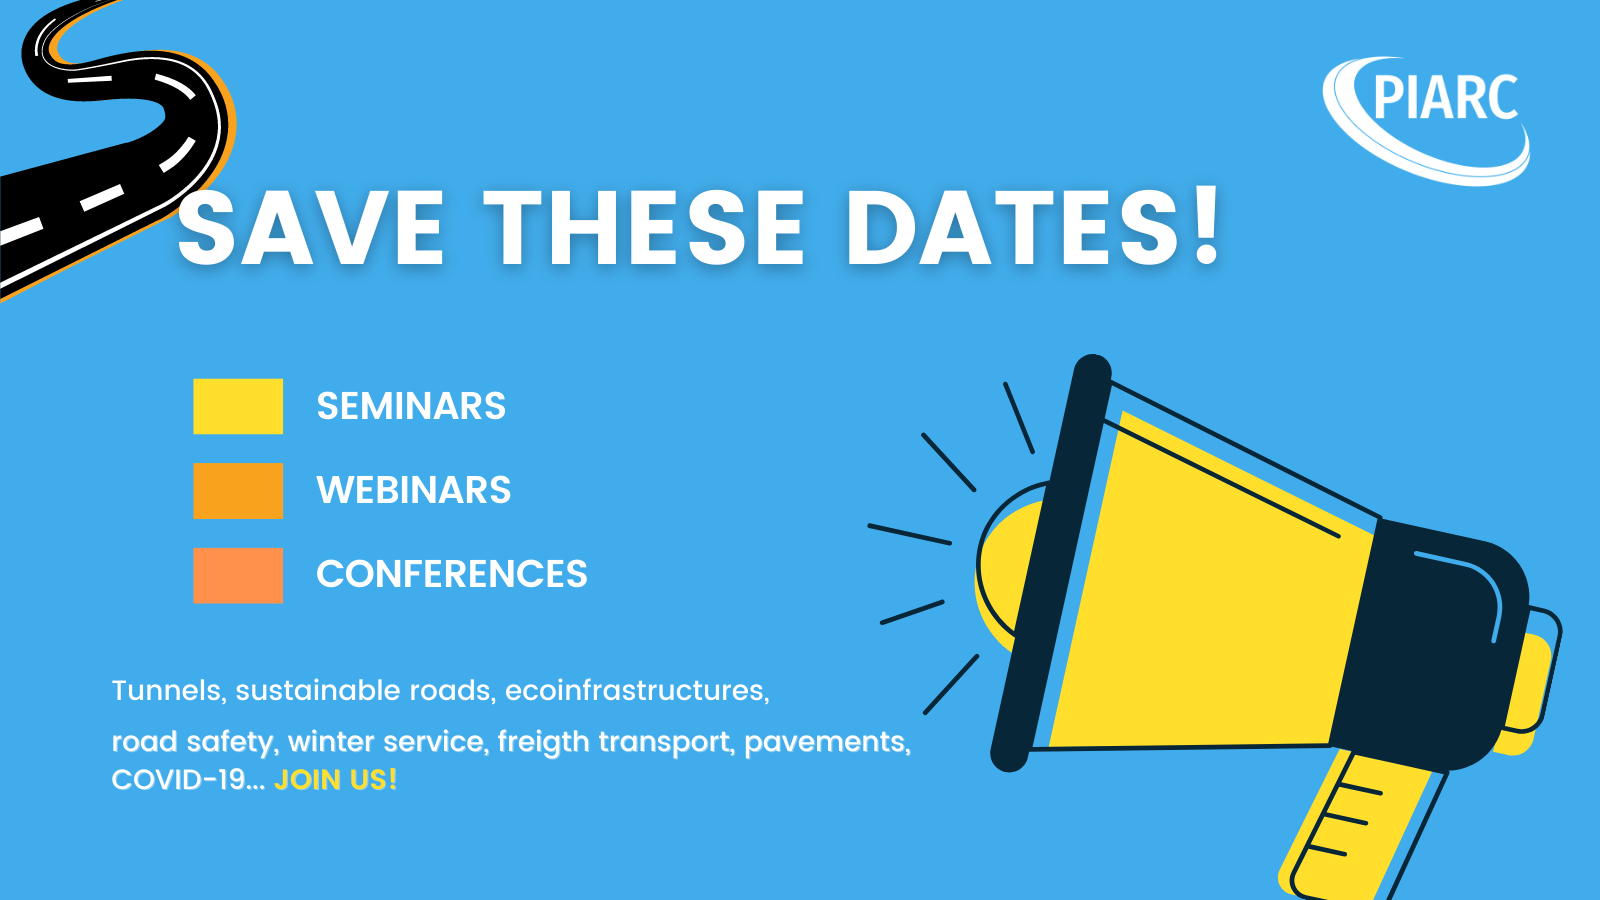 Save these dates! International experts will soon be addressing exciting technical topics related to roads and road transport. Join in!